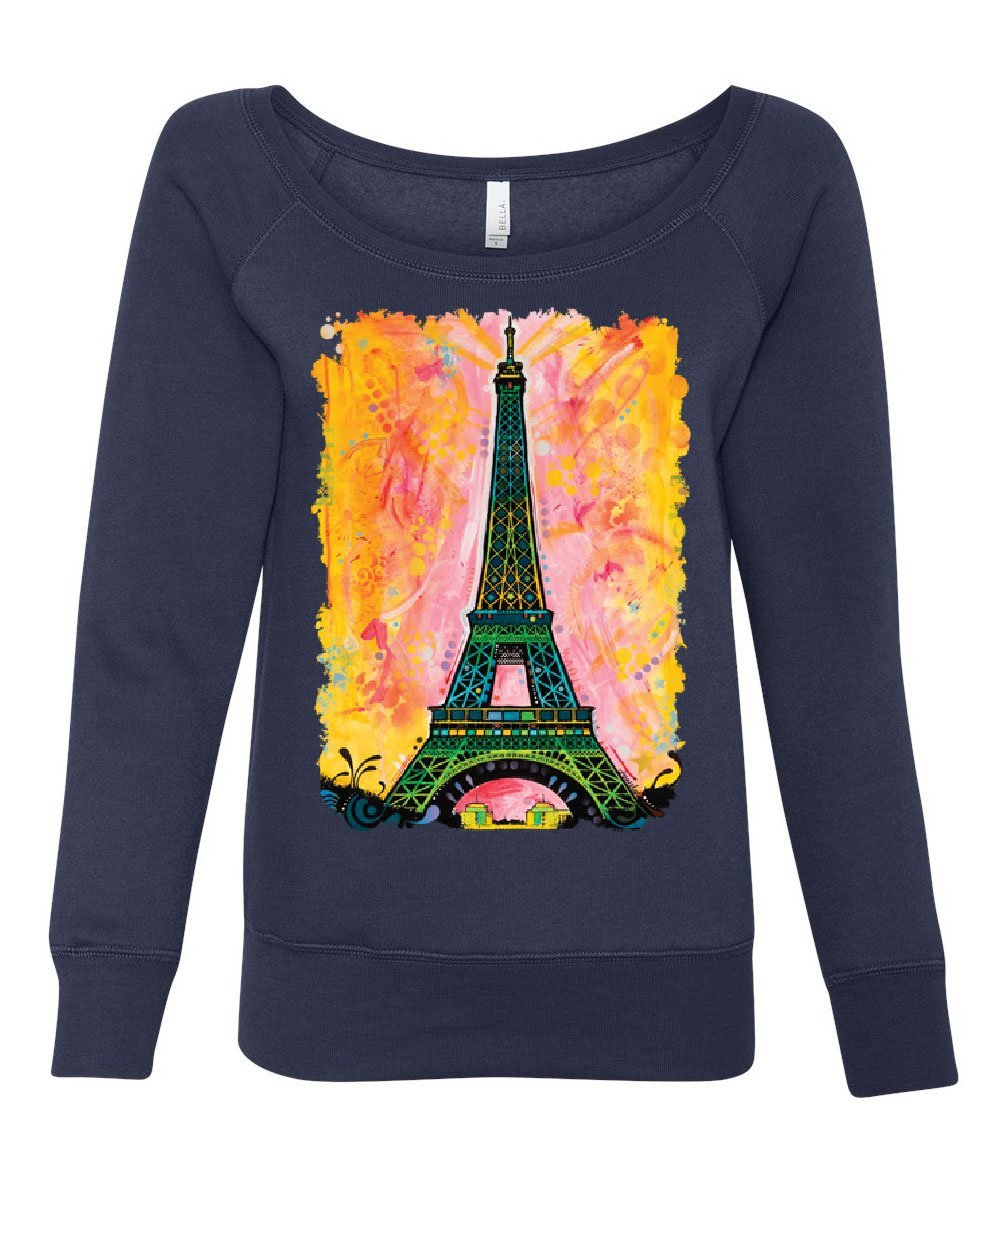 Eiffel Tower Women's Sweatshirt Dean Russo Paris France Travel Europe EU Navy Blue S